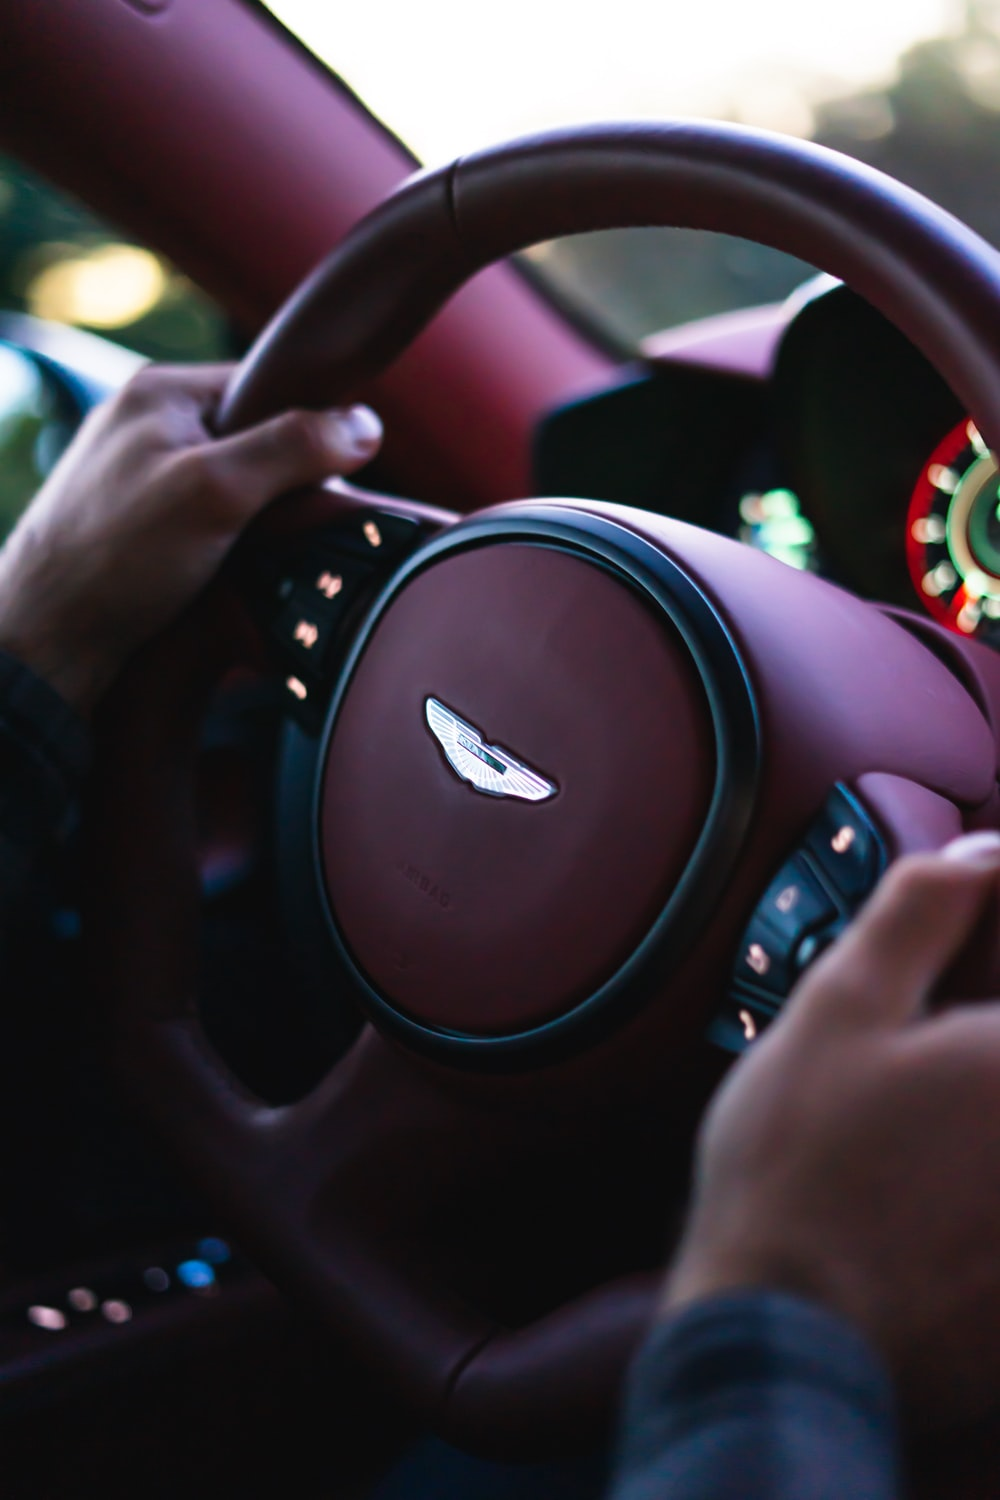 person holding black and silver steering wheel